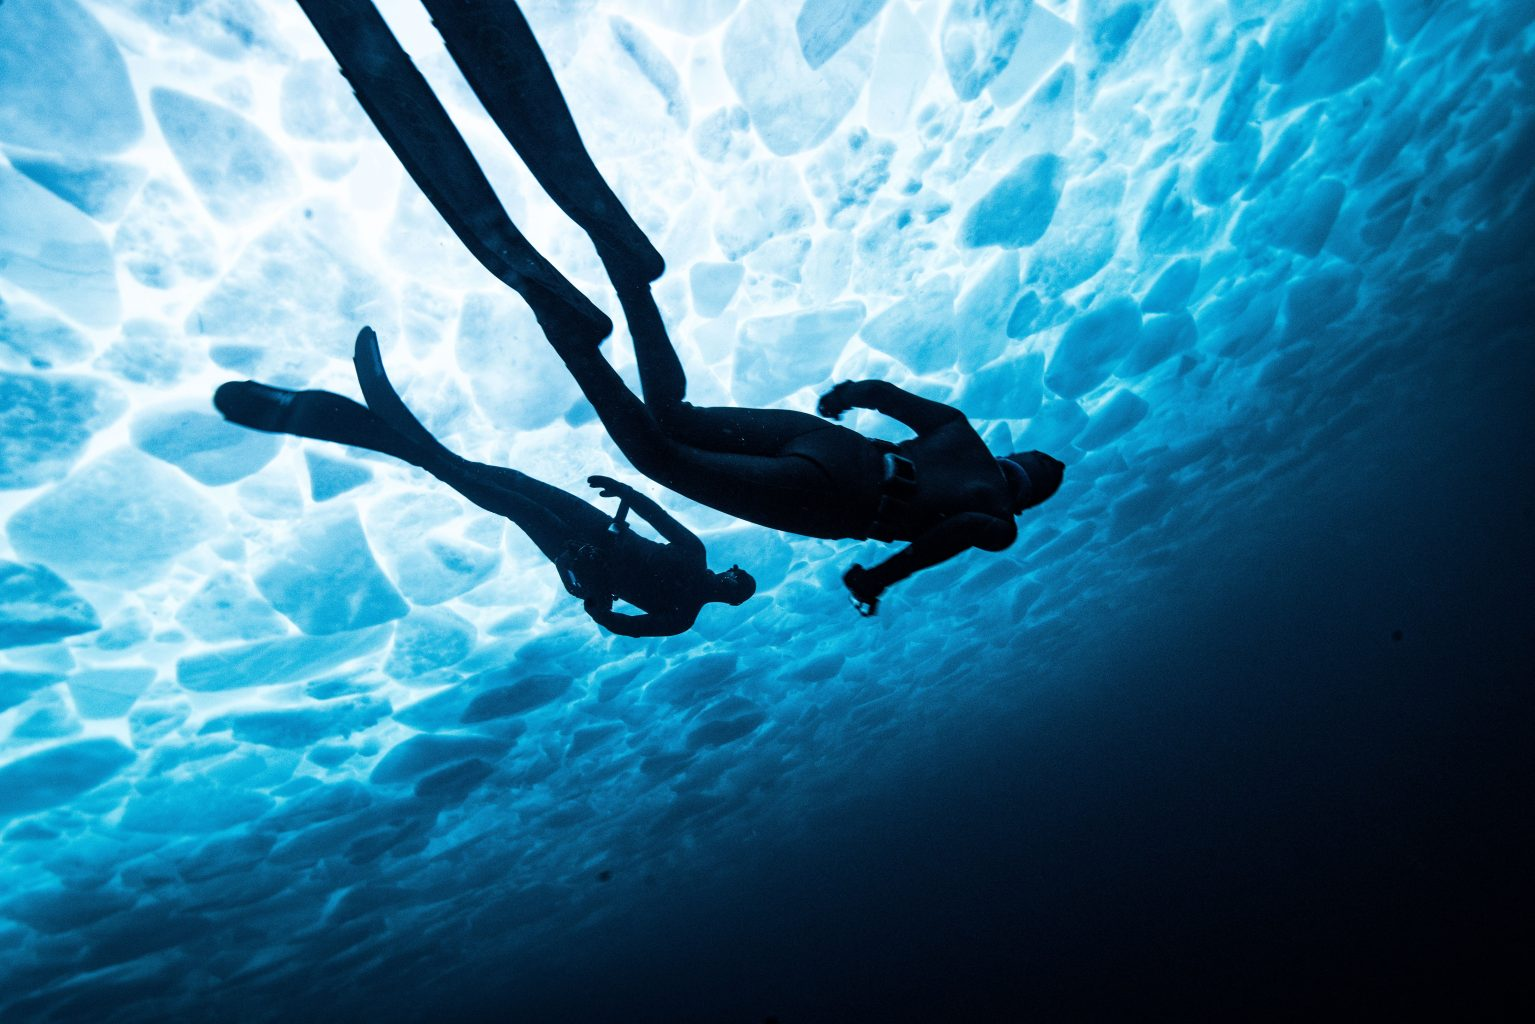 Image: Two freedivers swimming under glowing ice